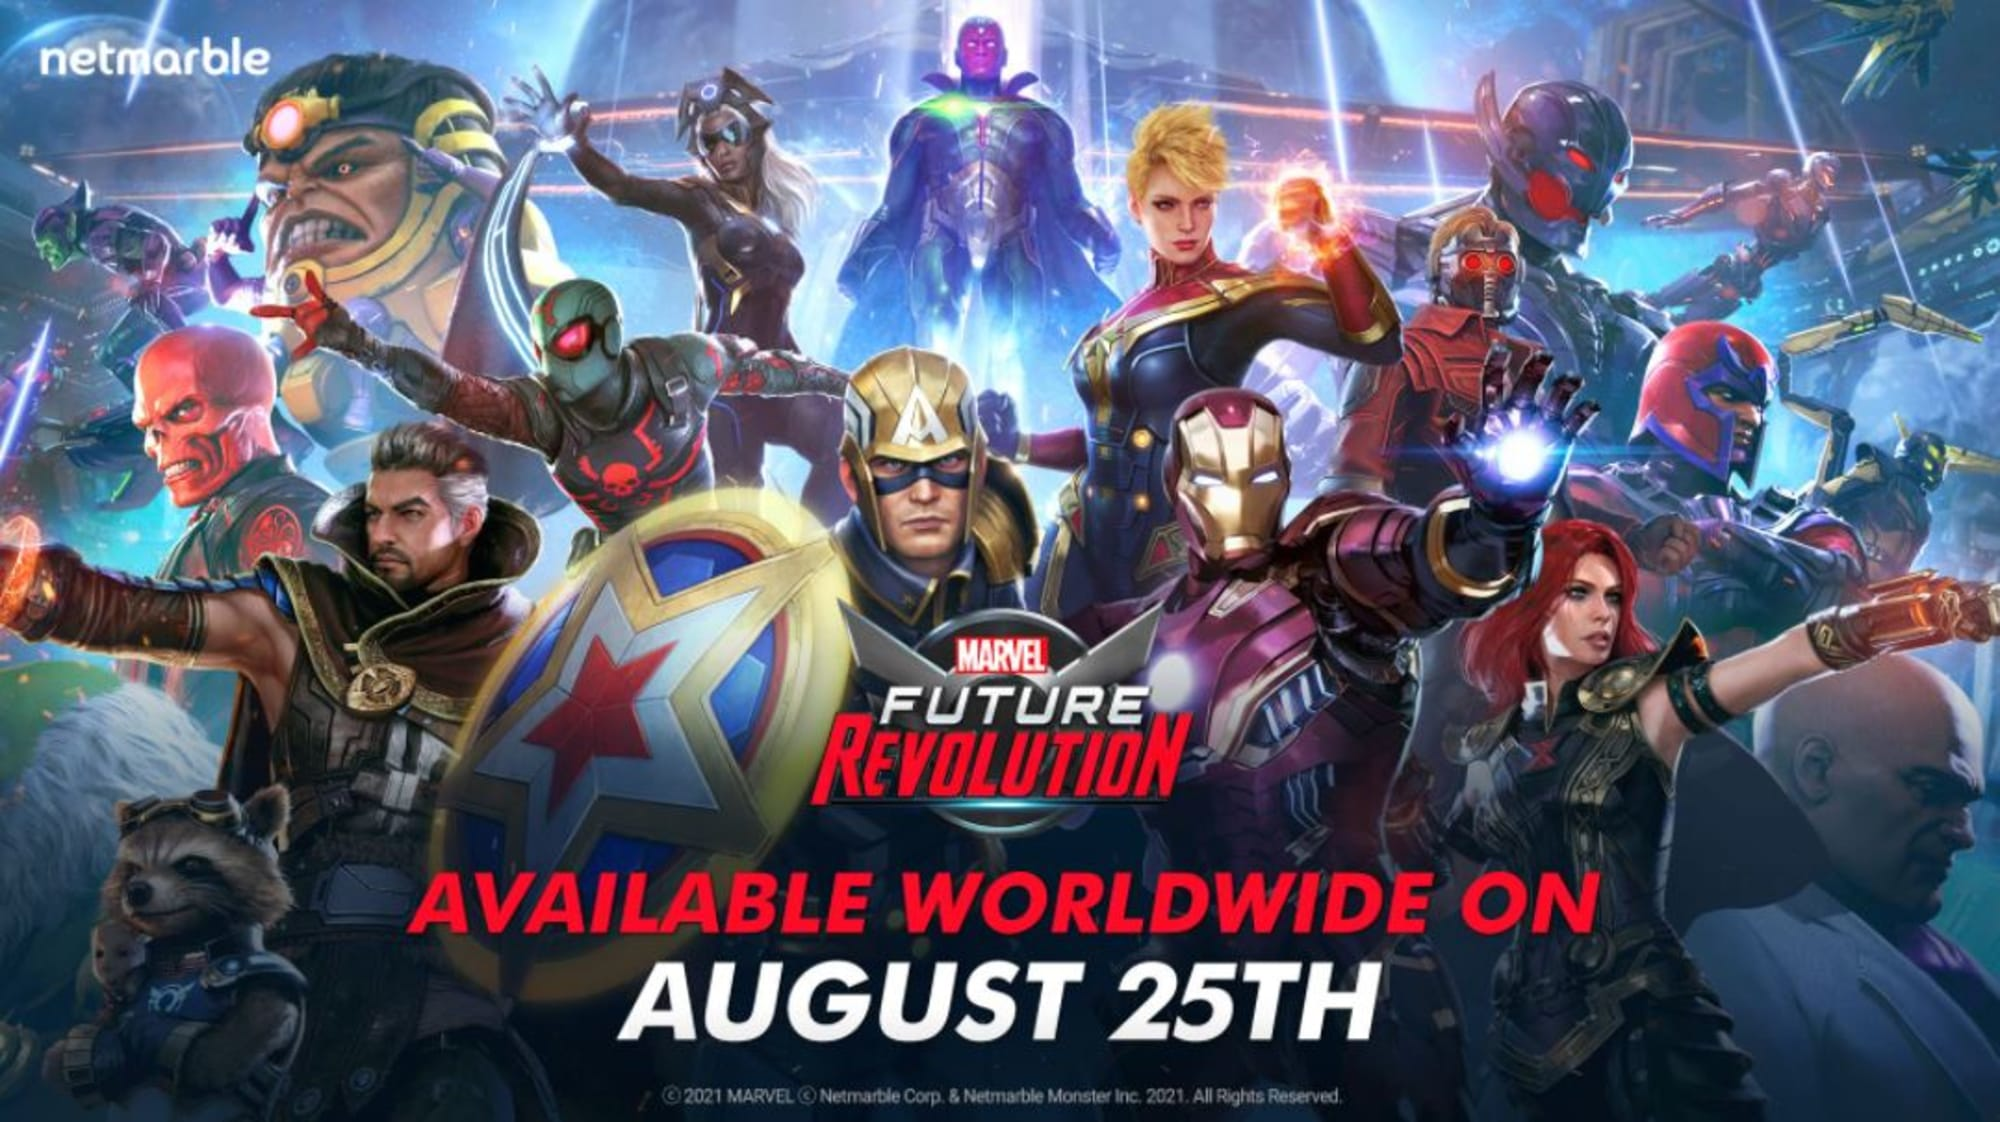 Netmarble's MARVEL Future Revolution should come to consoles